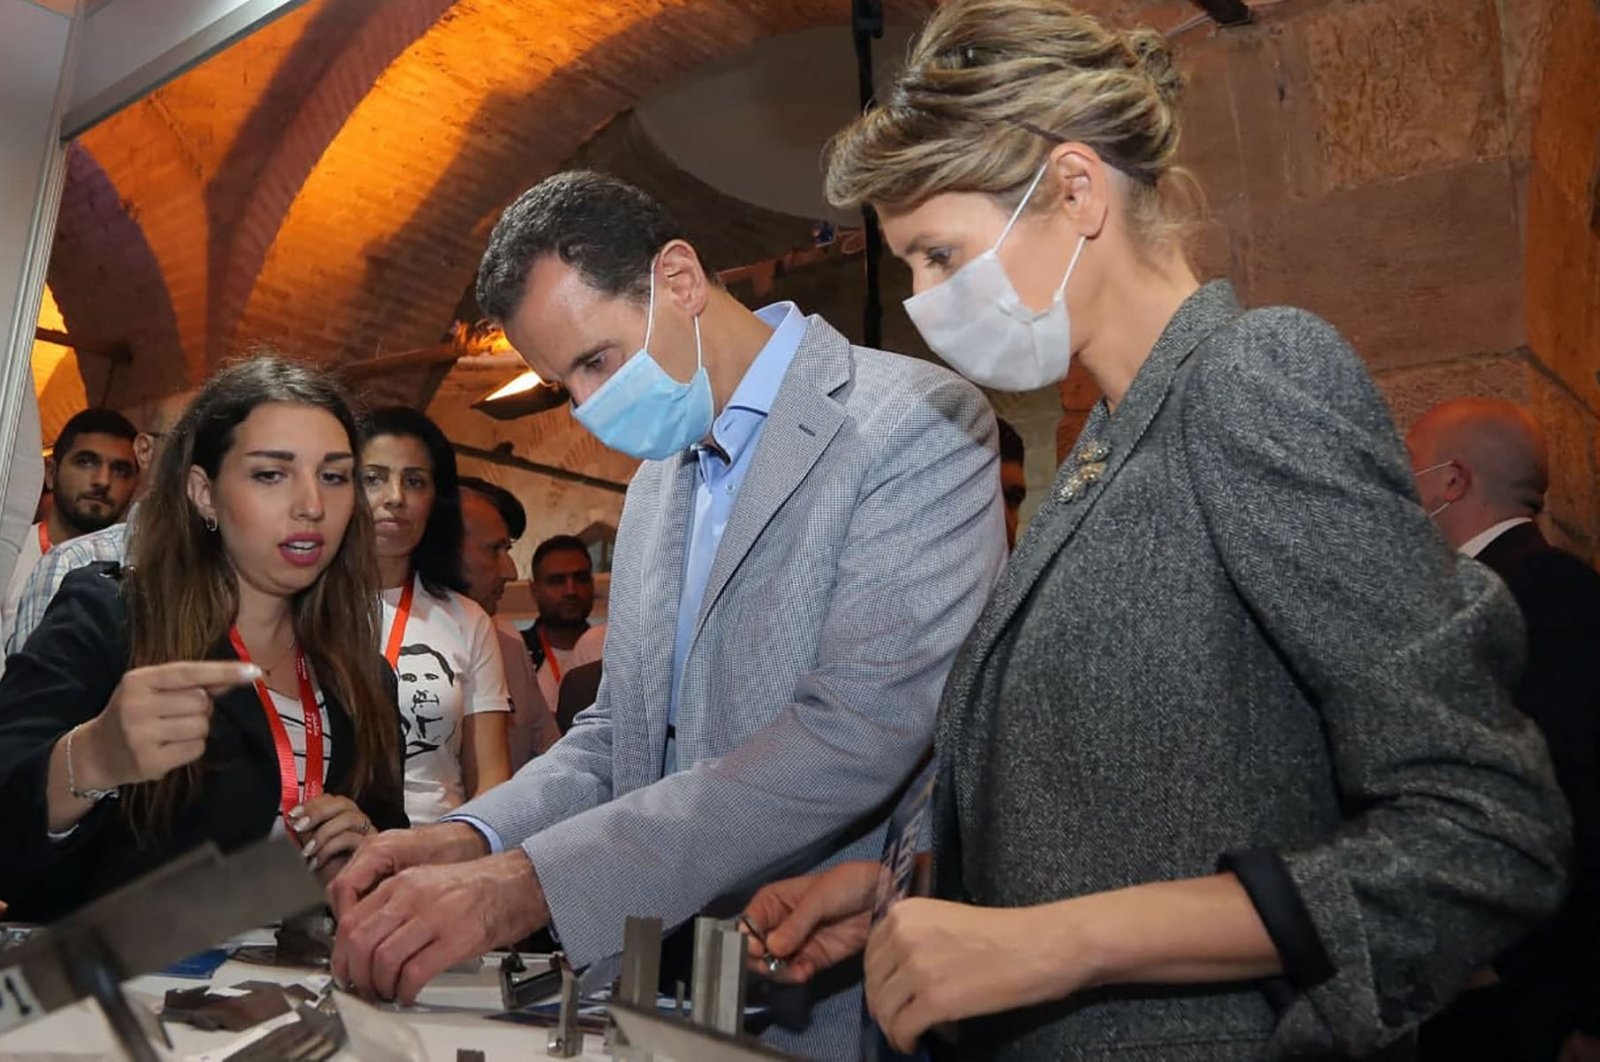 A file handout picture released by the official Syrian Arab News Agency (SANA) on November 4, 2020 shows Bashar Assad and his wife Asma, wearing face masks due to the COVID-19 pandemic, during a visit to a state-sponsored fair in Damascus for small businesses from Aleppo, northern Syria. (Photo: SANA via AFP)